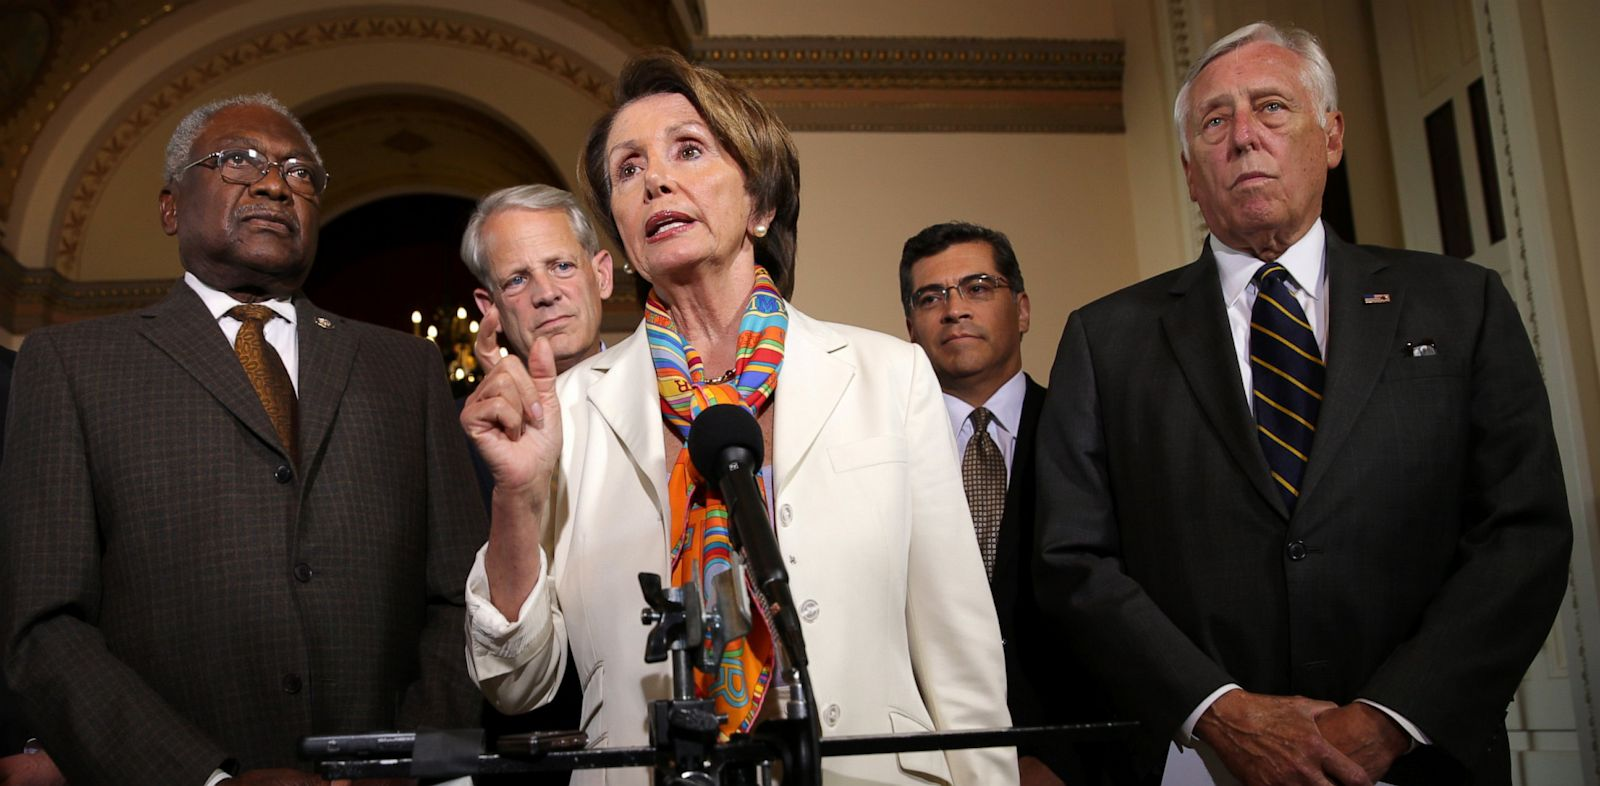 PHOTO: House Minority Leader Rep. Nancy Pelosi (D-Calif.) (3rd L) speaks as party leaders listen during a news conference after a House Democratic leadership meeting September 30, 2013 on Capitol Hill in Washington, D.C.